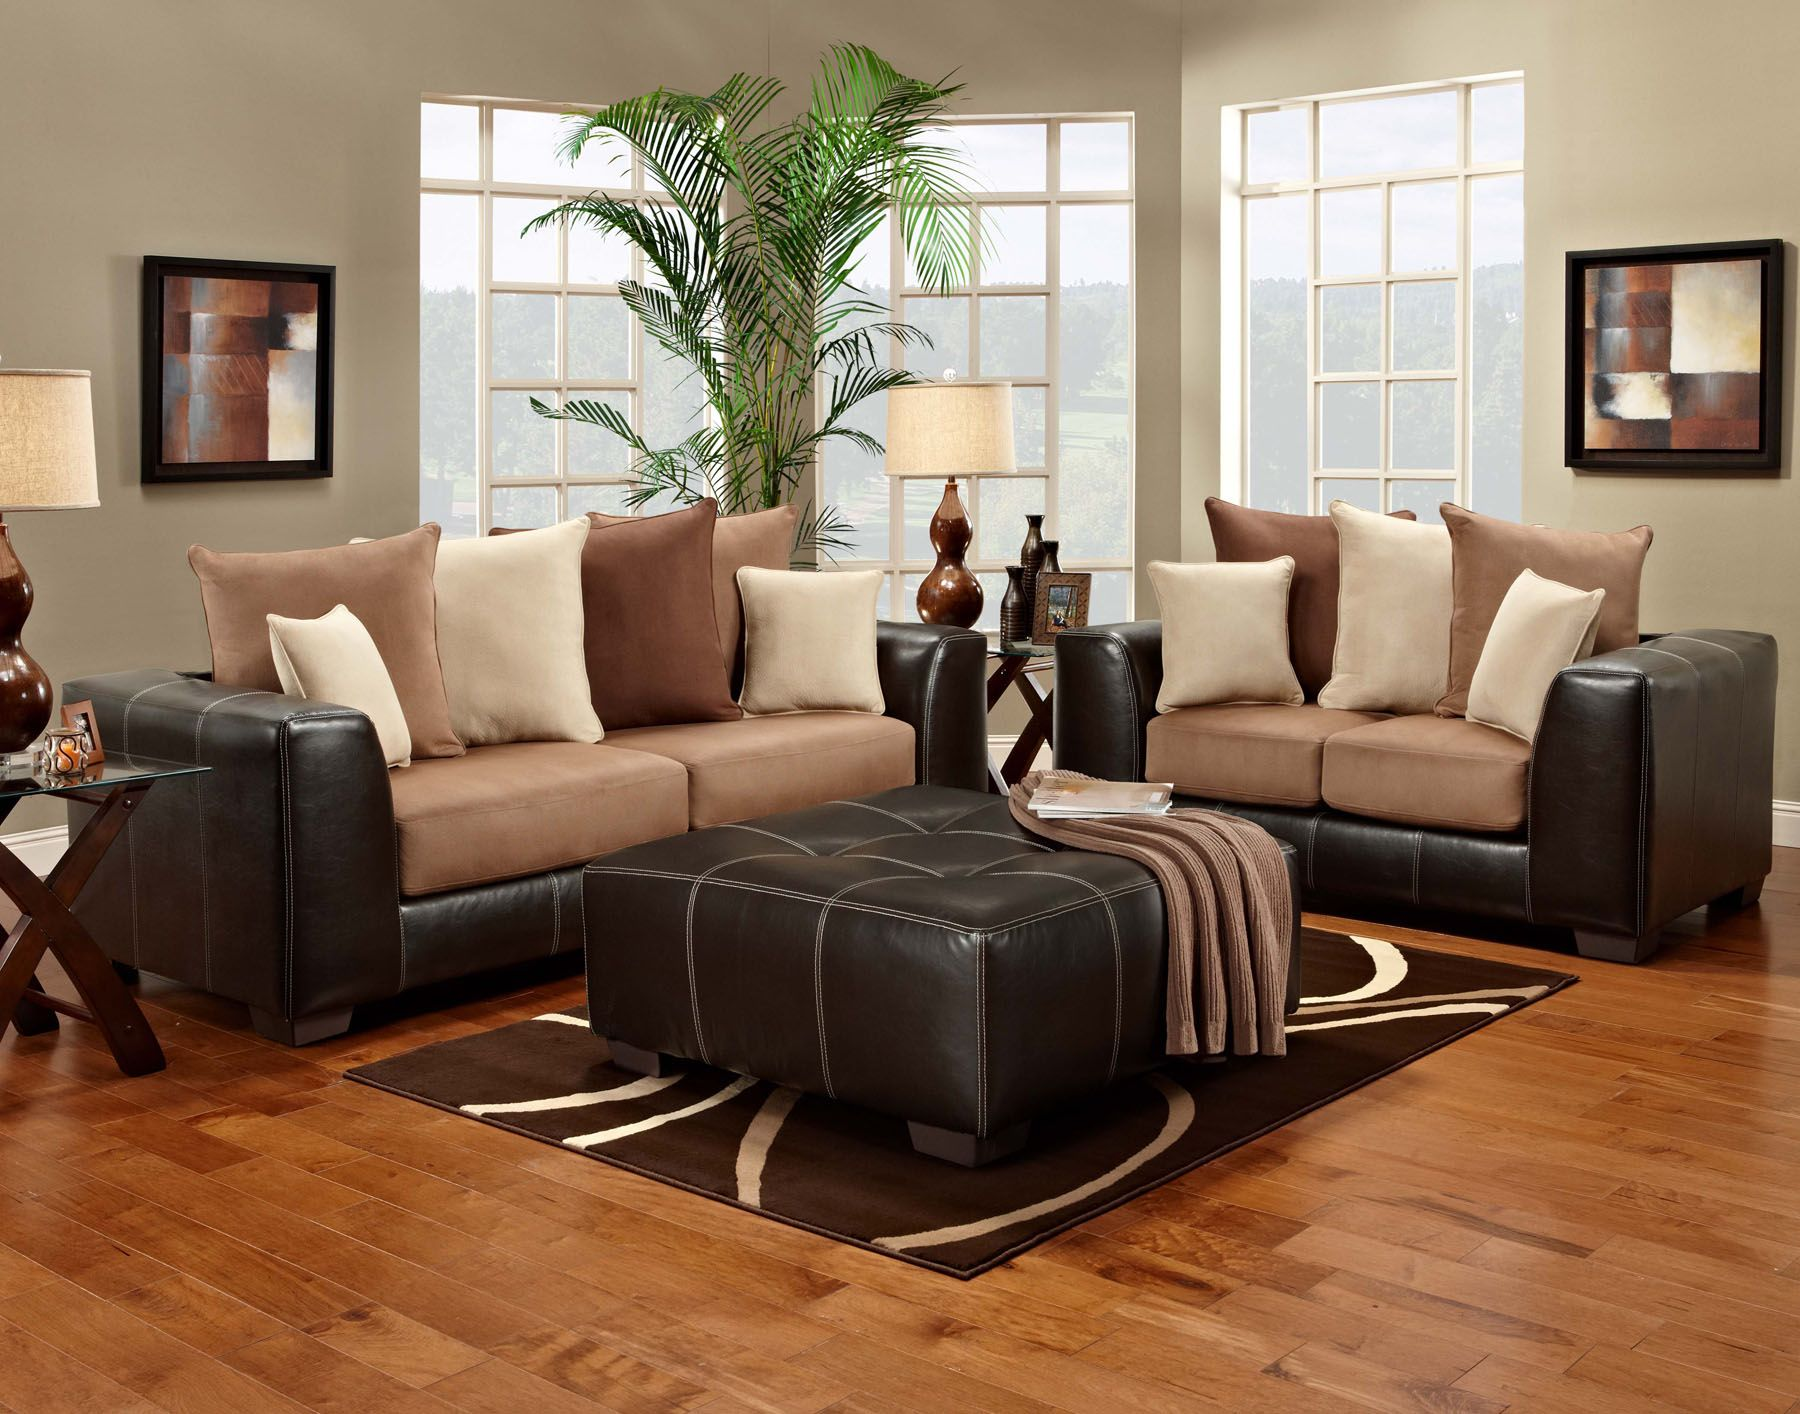 New Sea Rider Sofa And Loveseat Set In A Padded Suede With A